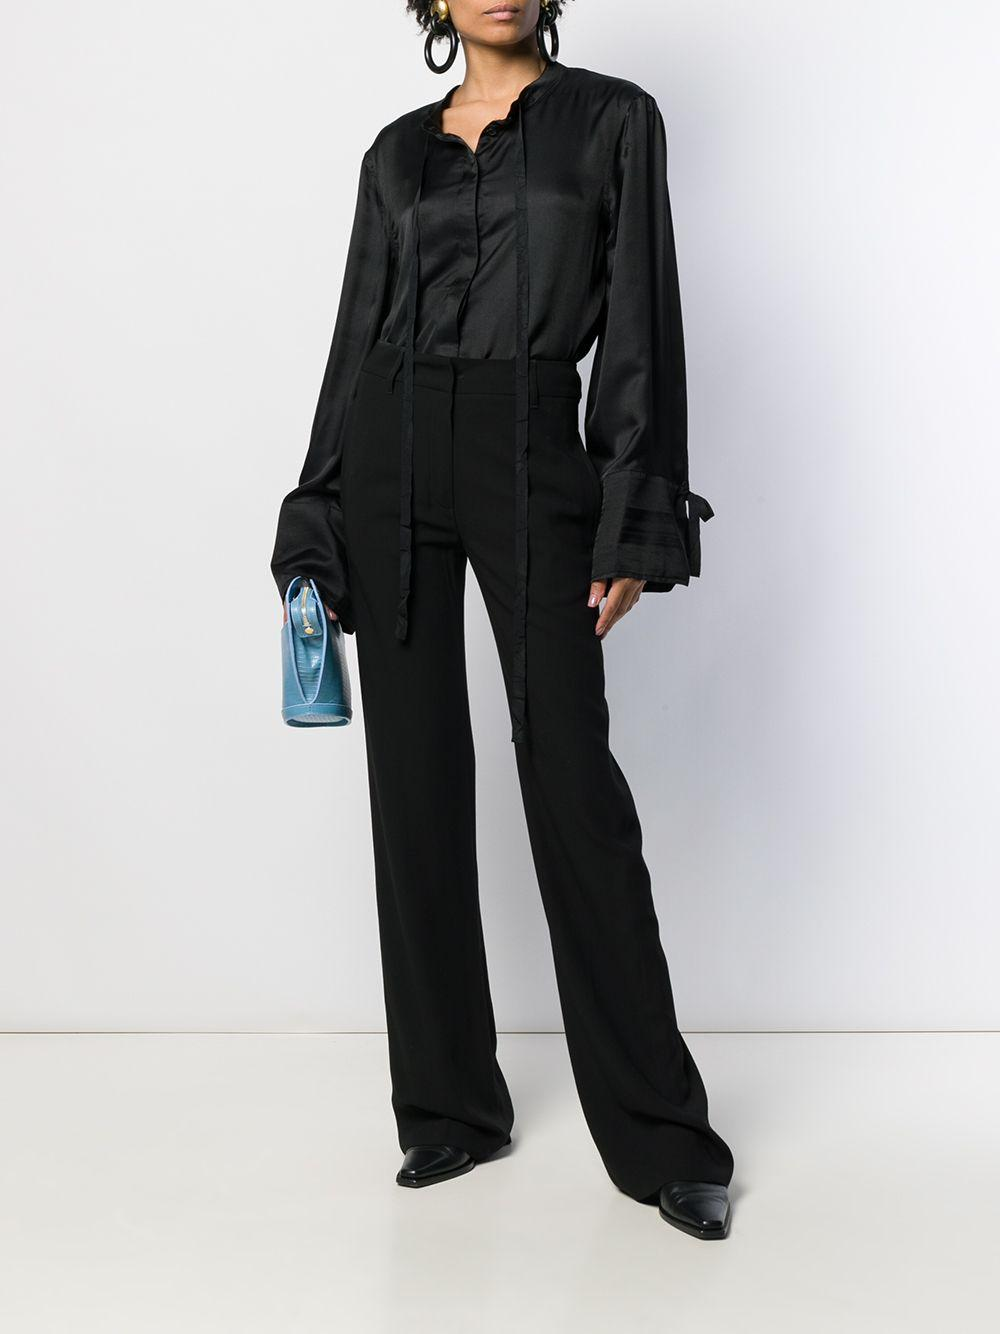 19022000P122 99 Synthetic->Rayon Ann Demeulemeester en coloris Noir